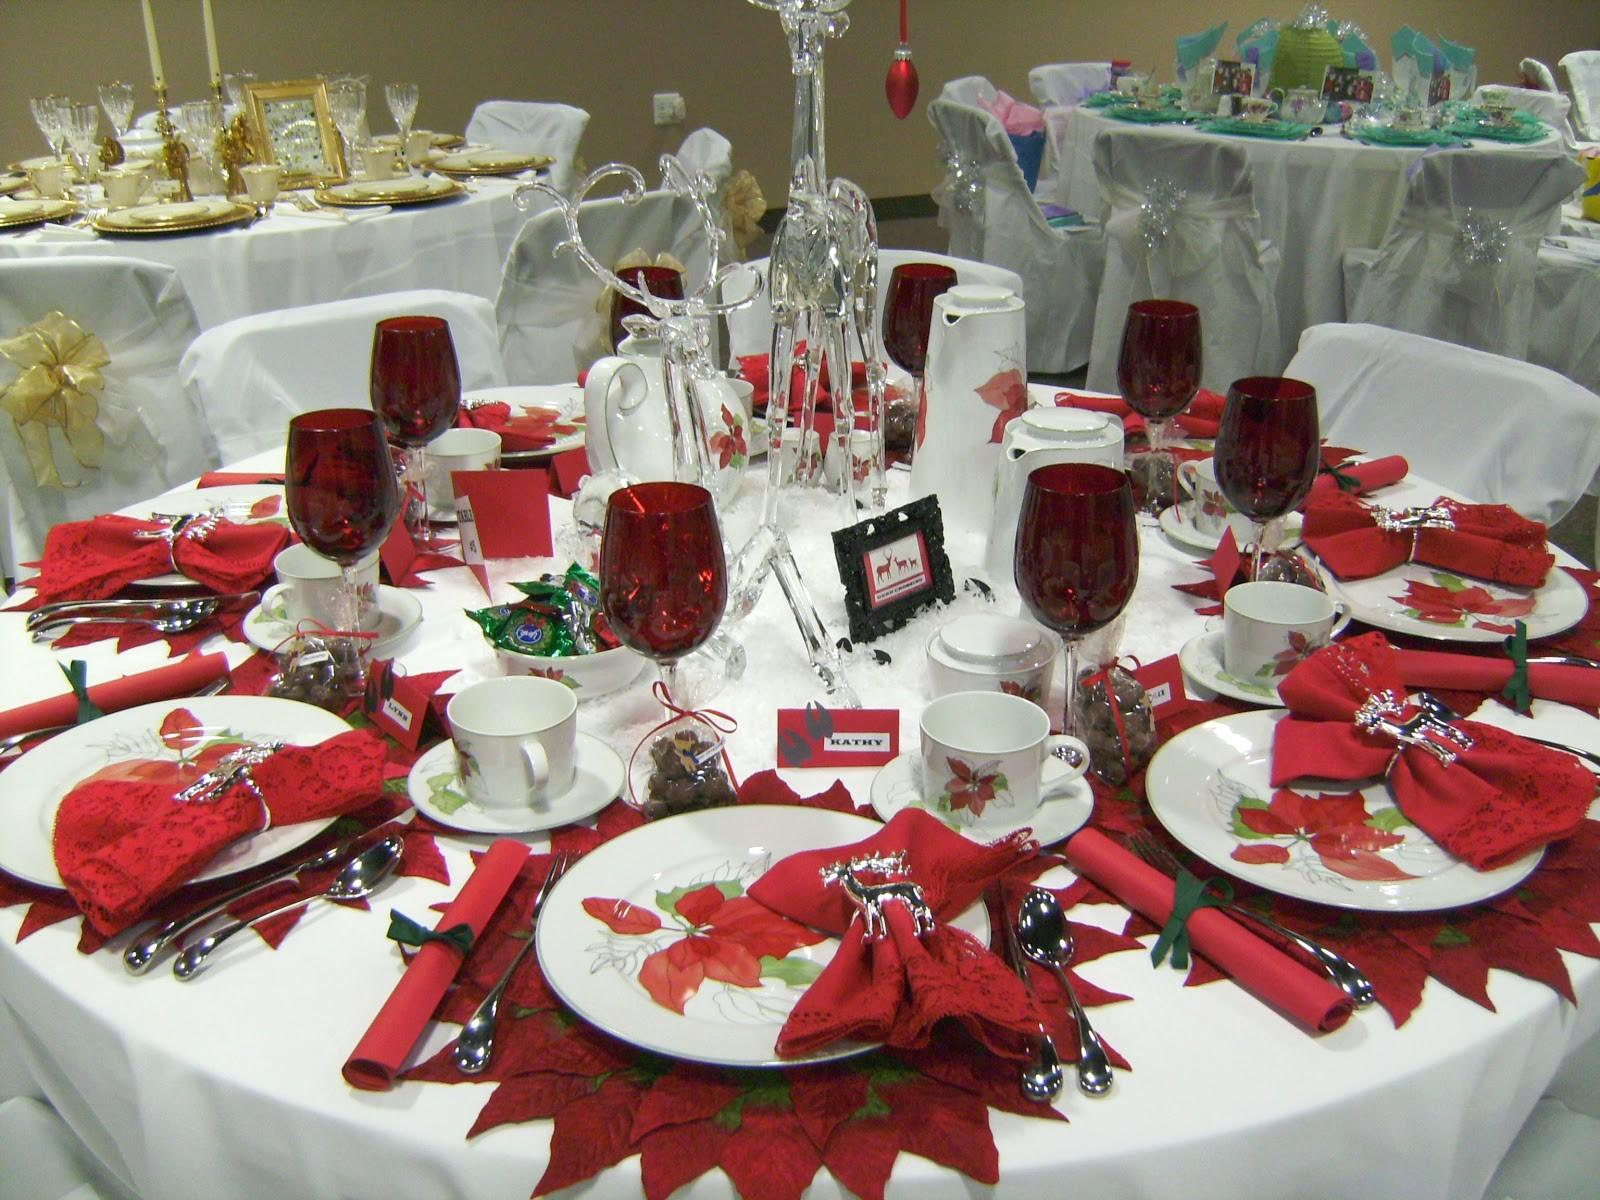 Relevant Tea Leaf 2010 Christmas Tablescapes